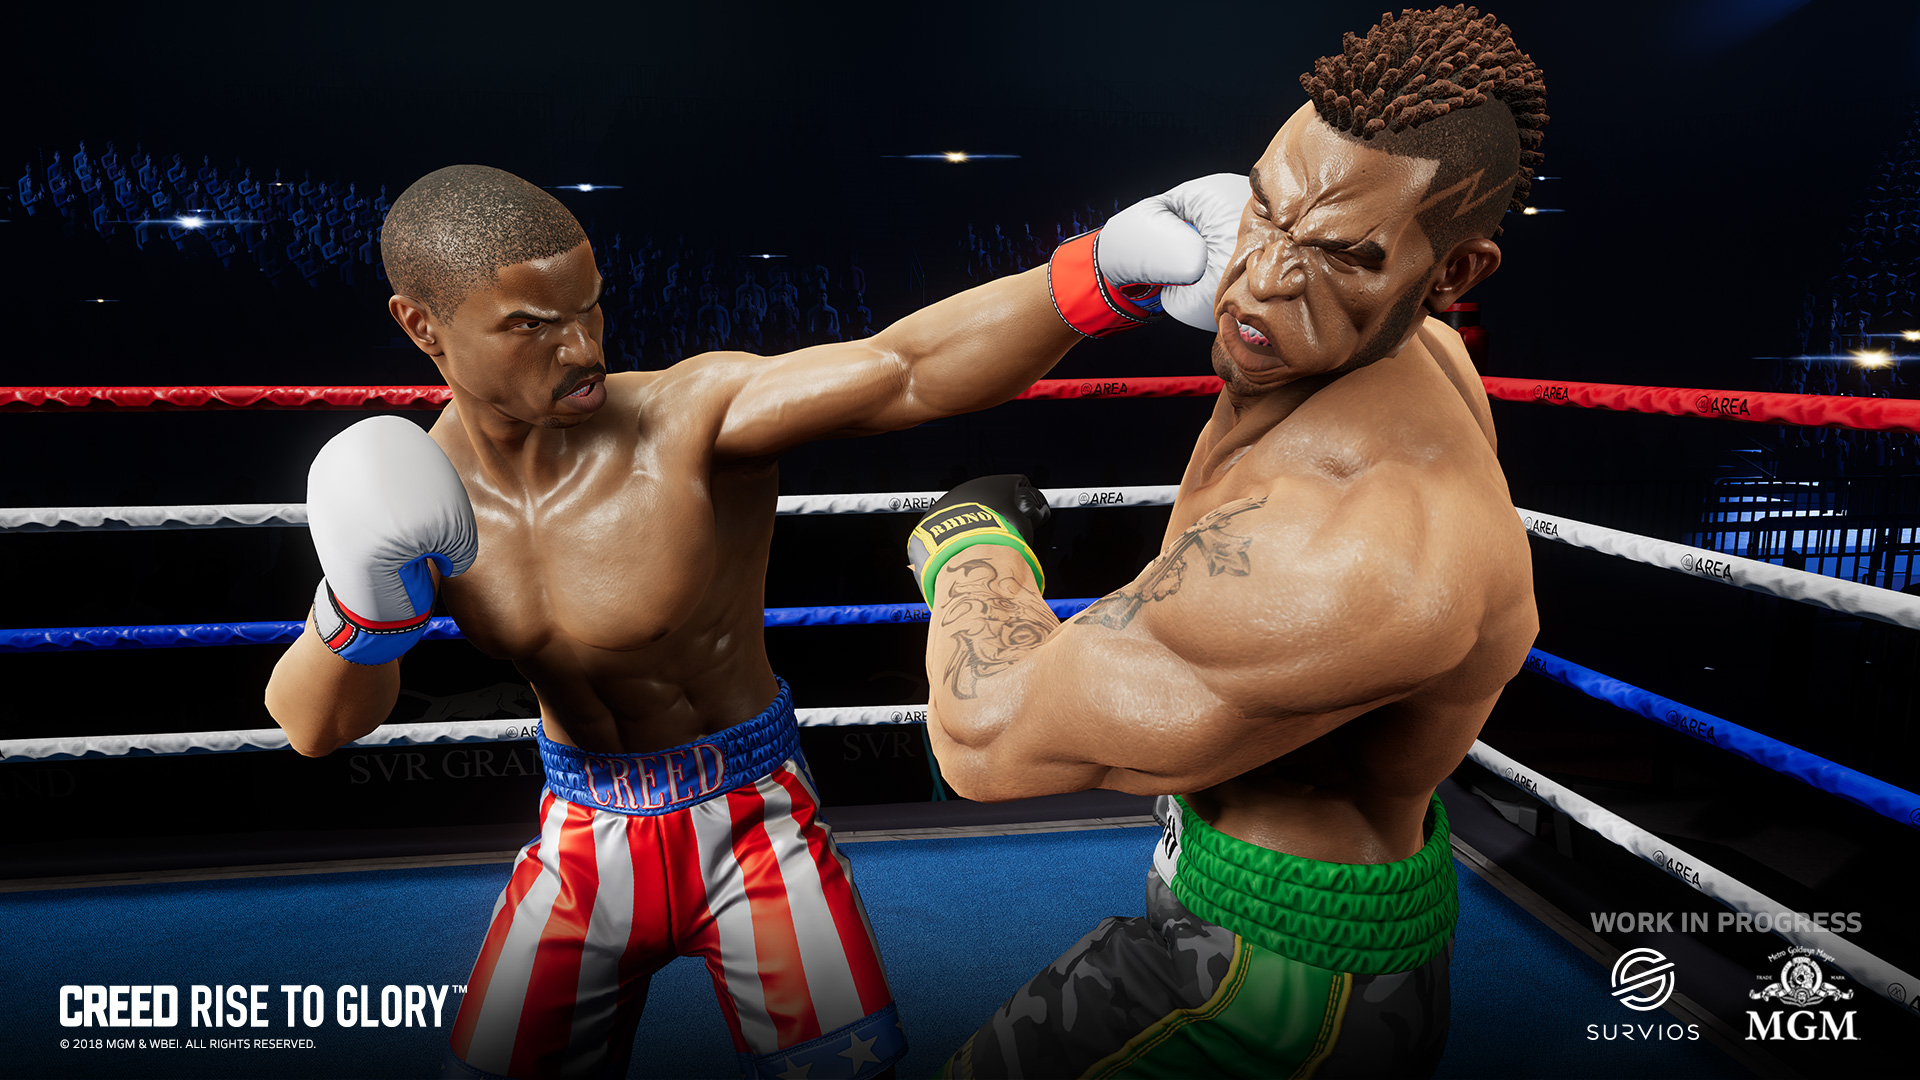 Review - Creed: Rise to Glory (PSVR)